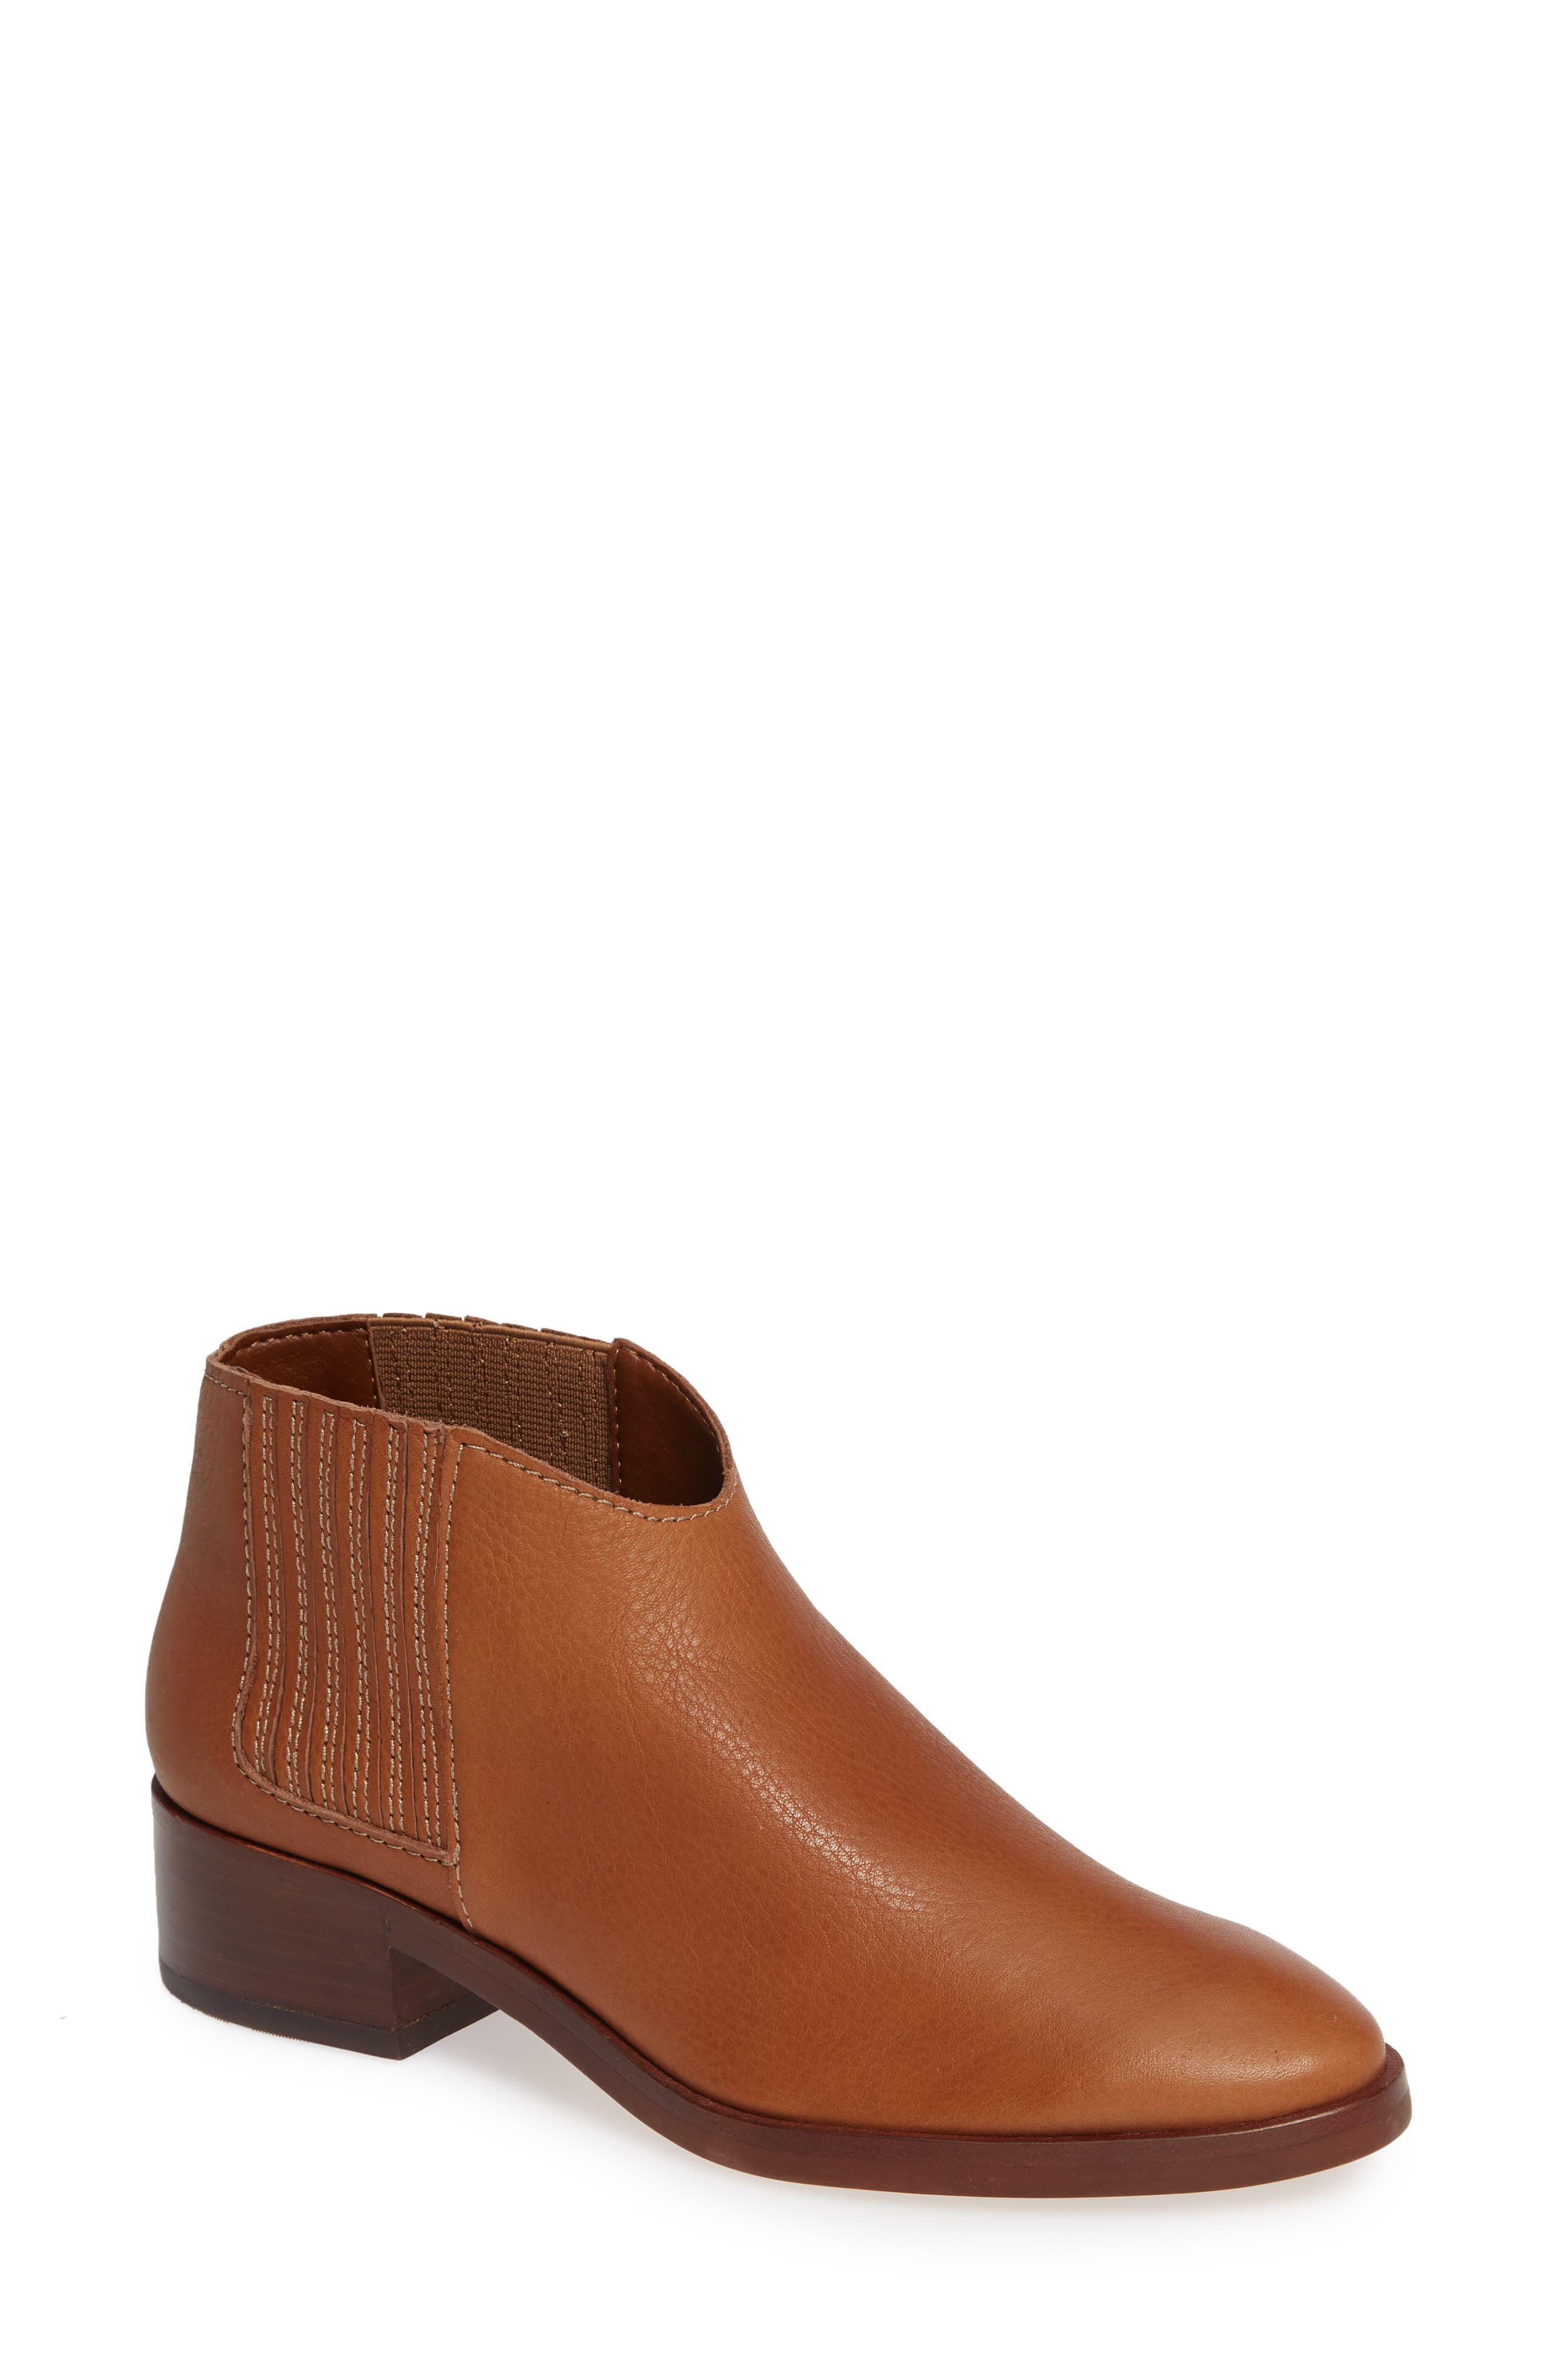 Towne Bootie,                             Main thumbnail 1, color,                             BROWN LEATHER